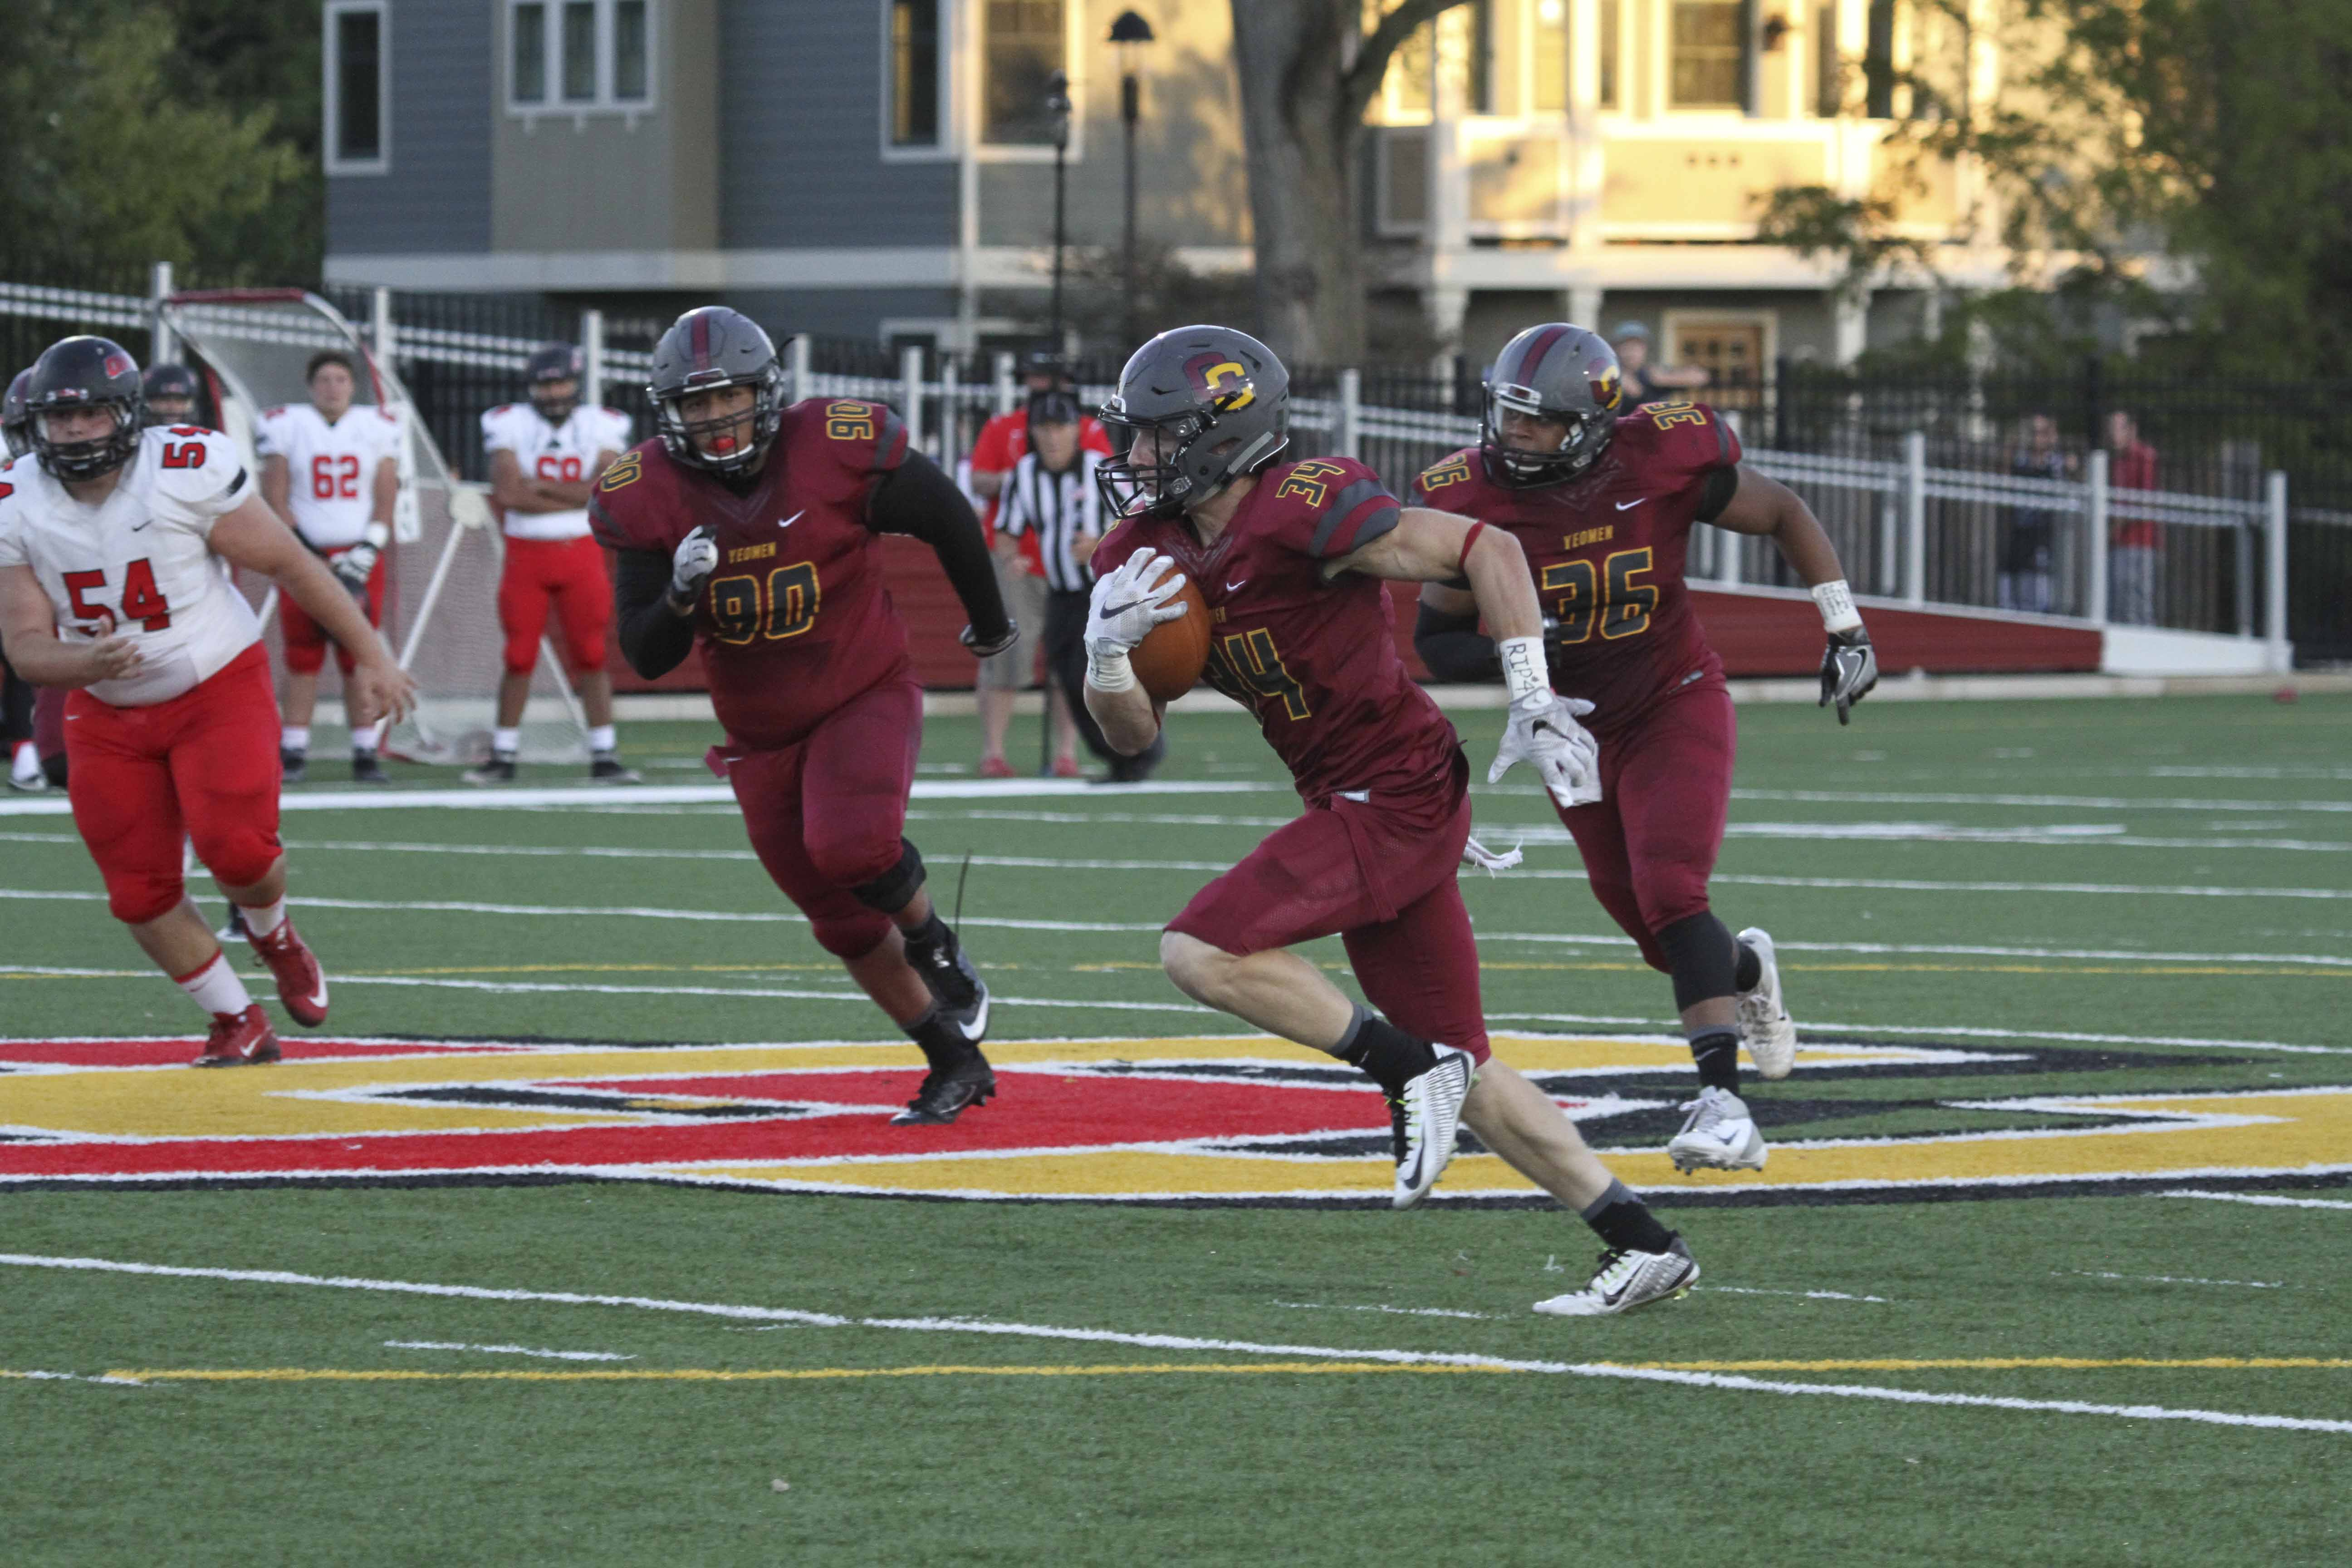 Junior defensive back Bennett Jackson dodges defenders after intercepting a pass against Ohio Wesleyan University Saturday. Jackson eventually returned the interception 55 yards for a touchdown in Oberlin's 29–16 loss.